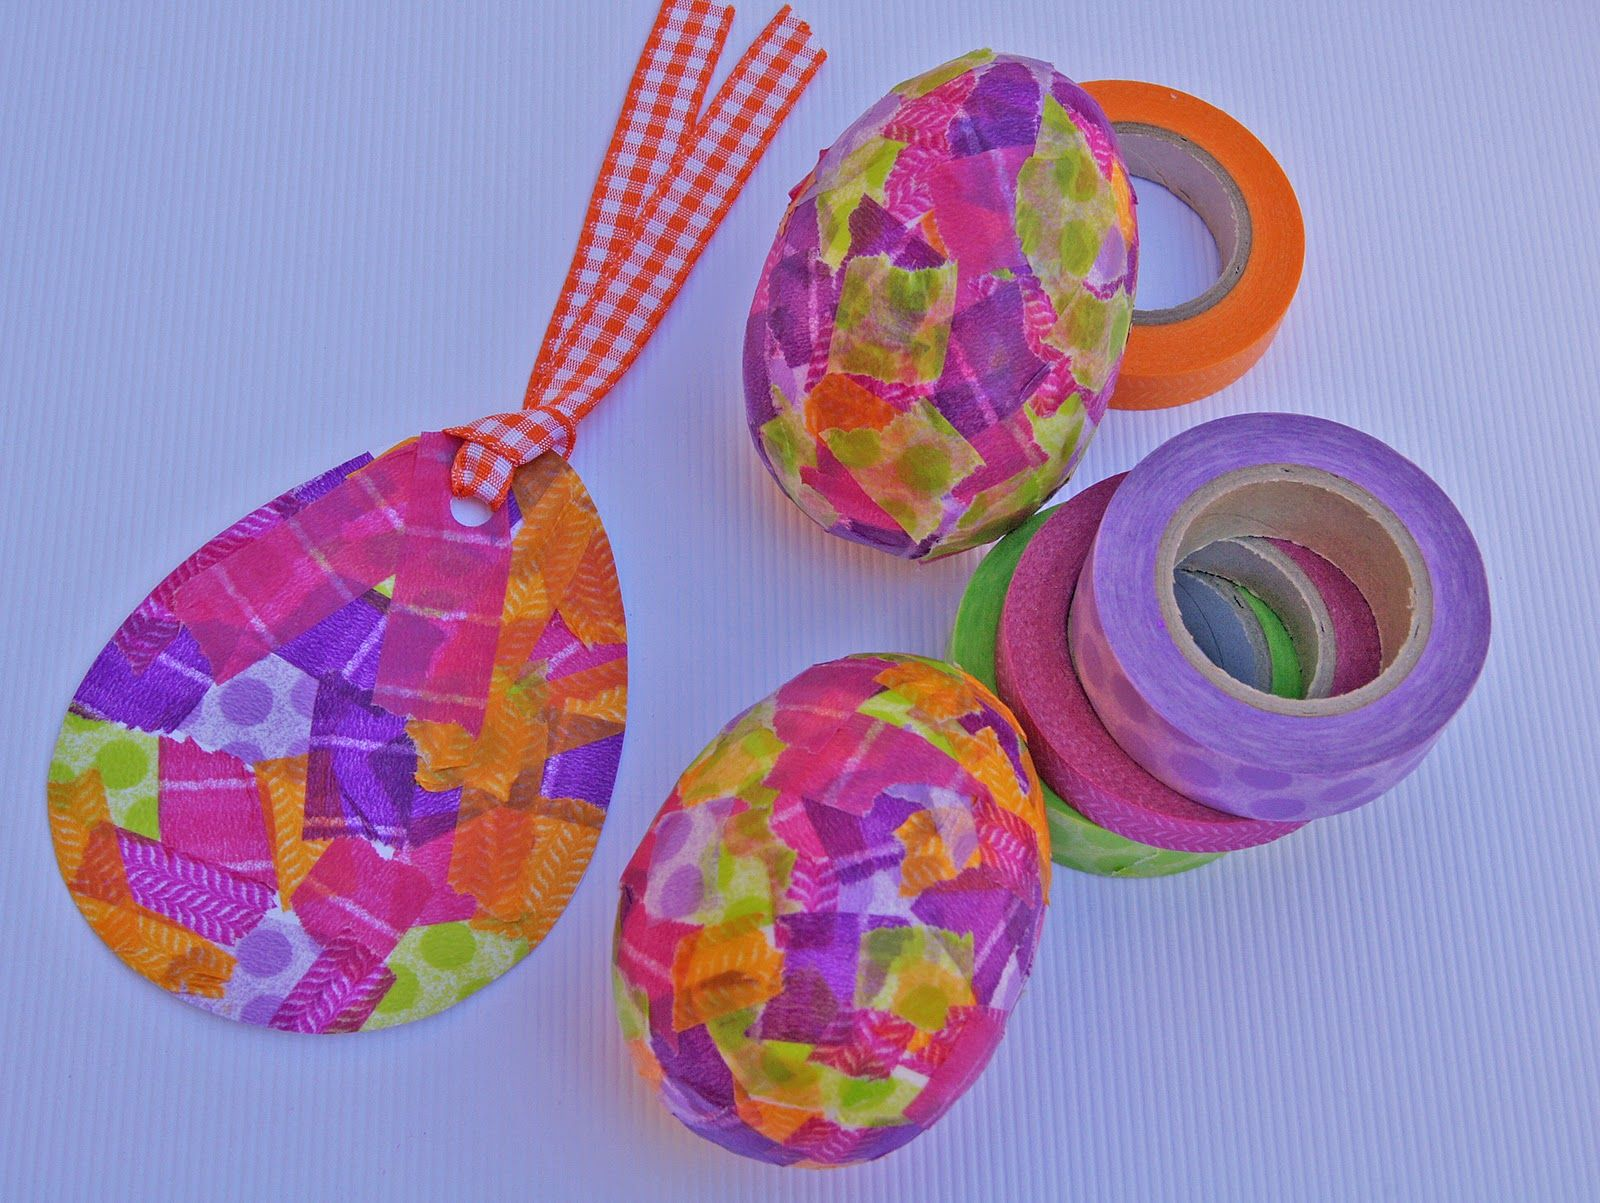 Easter craft ideas for toddlers - Easter Craft Ideas For Toddlers 22